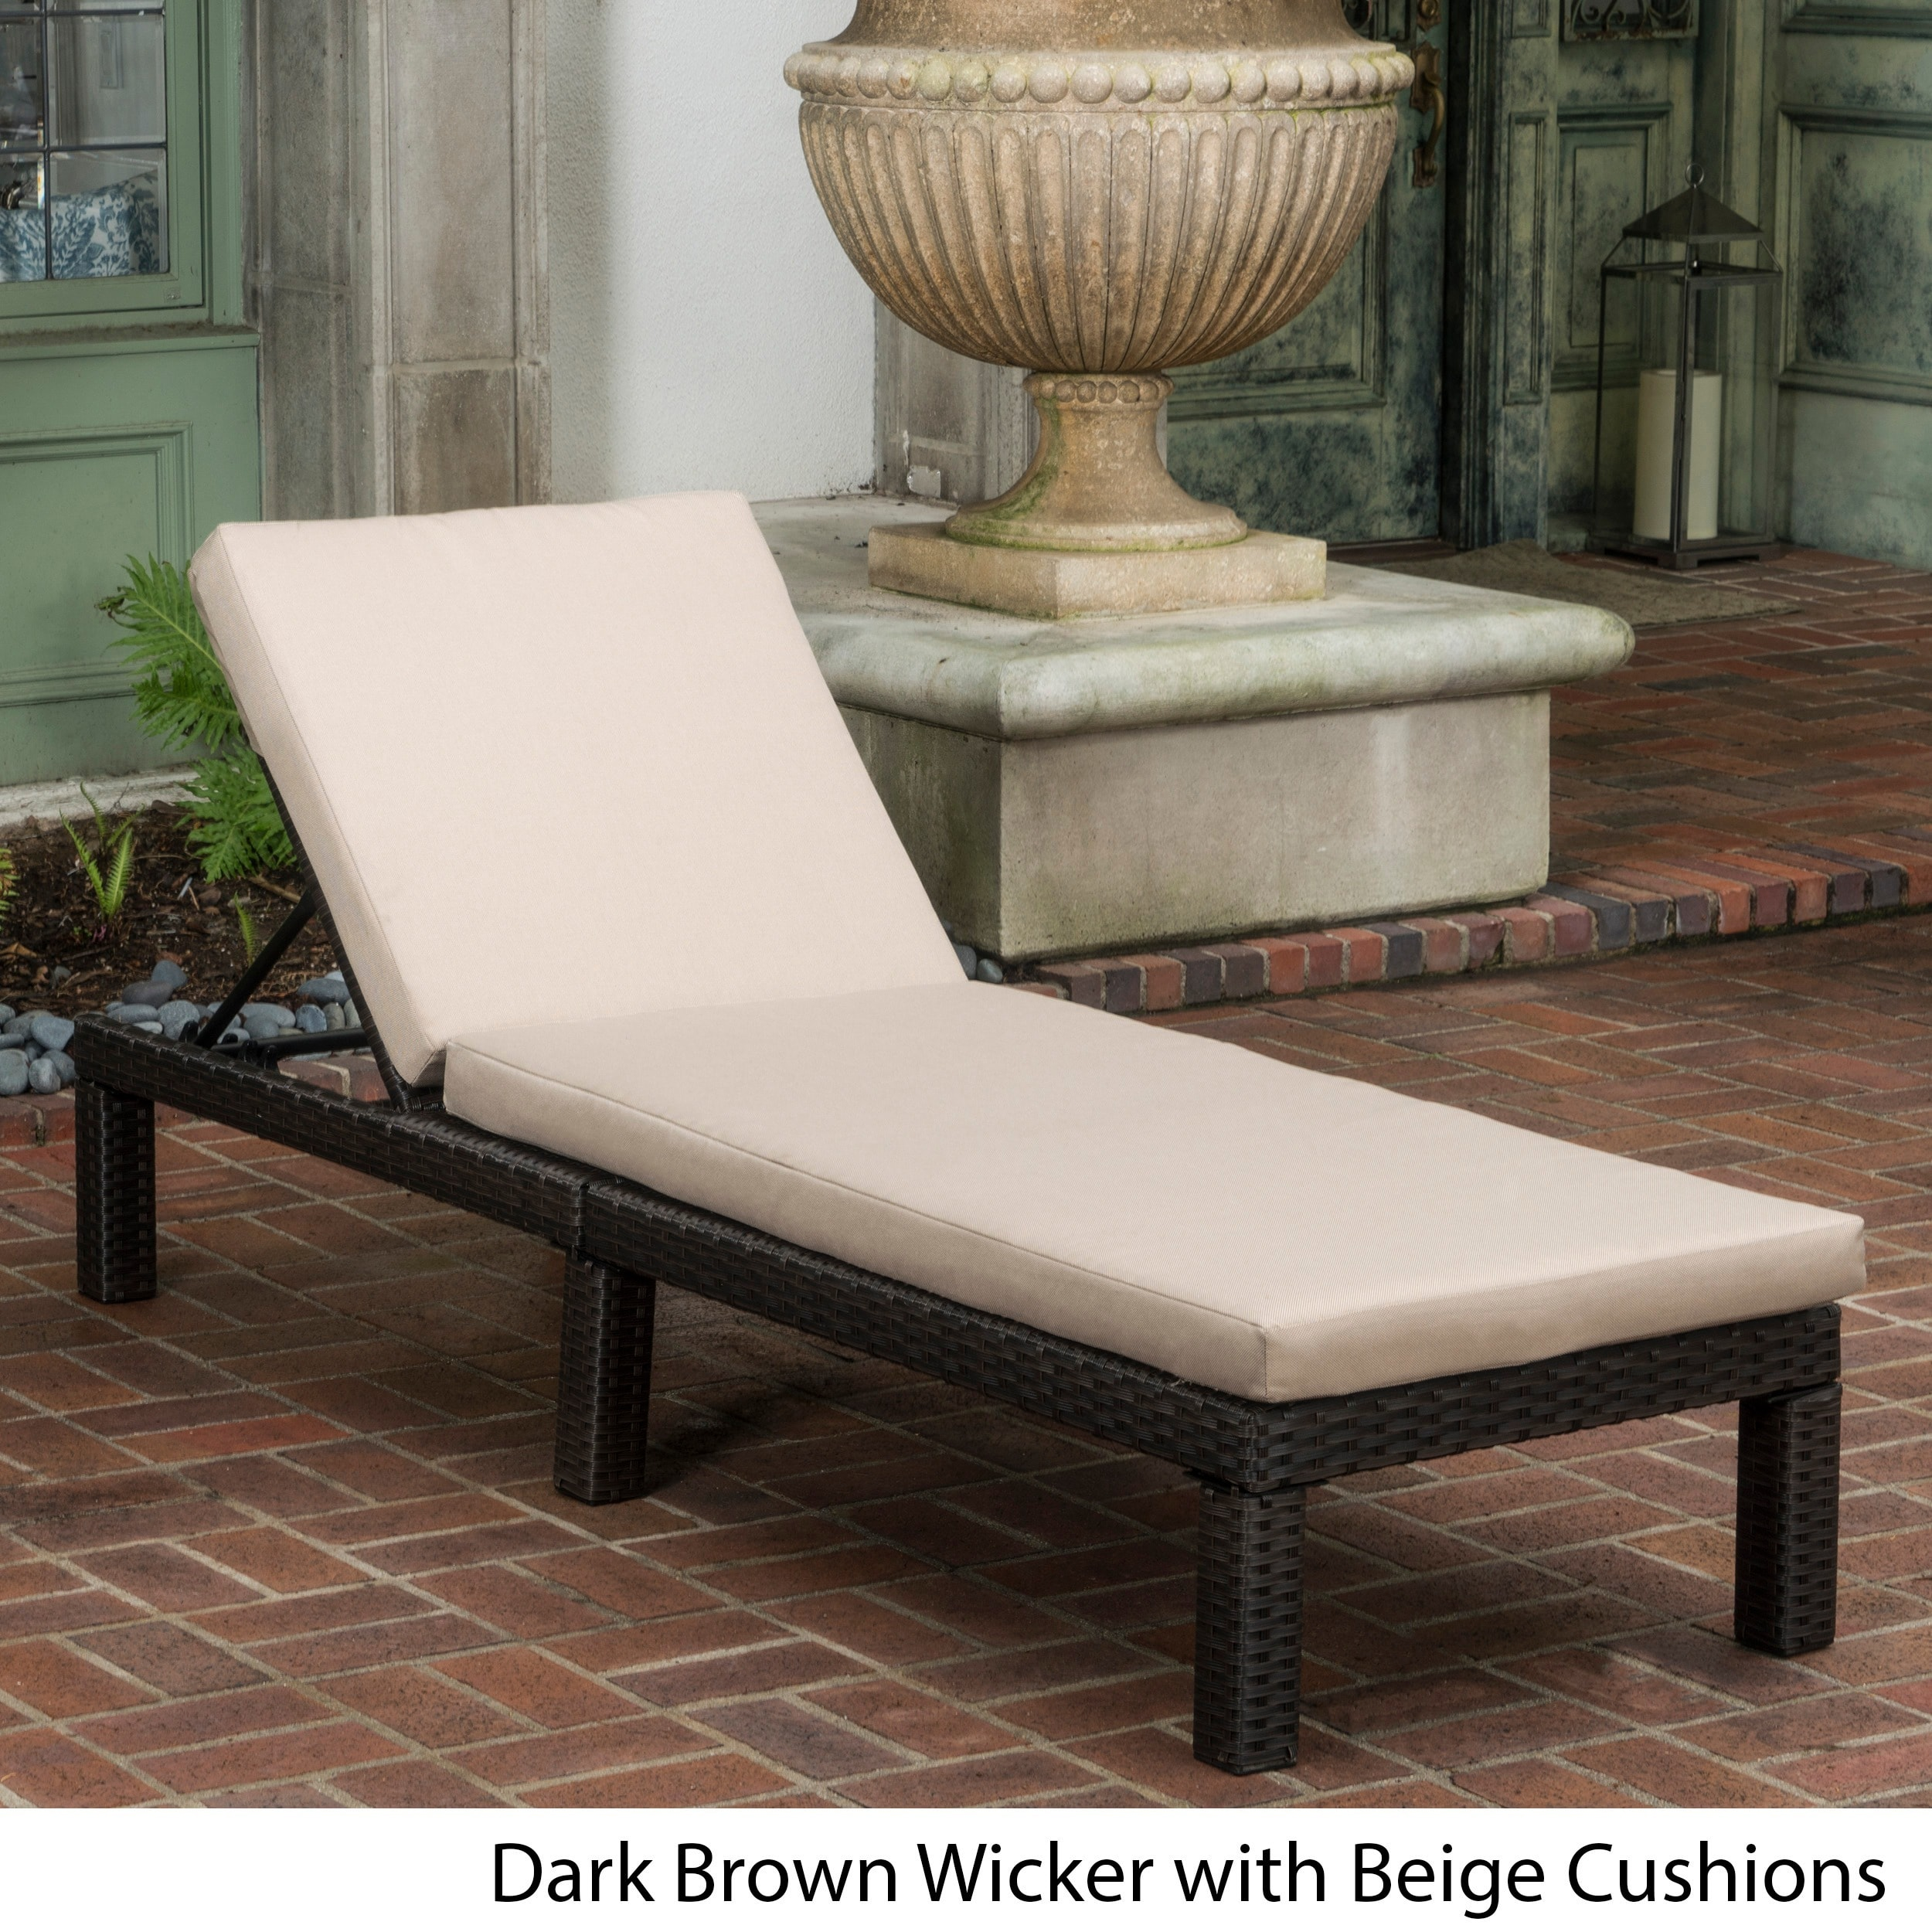 Christopher Knight Home Puerta Outdoor Adjustable Wicker Chaise Lounge with Cushion by